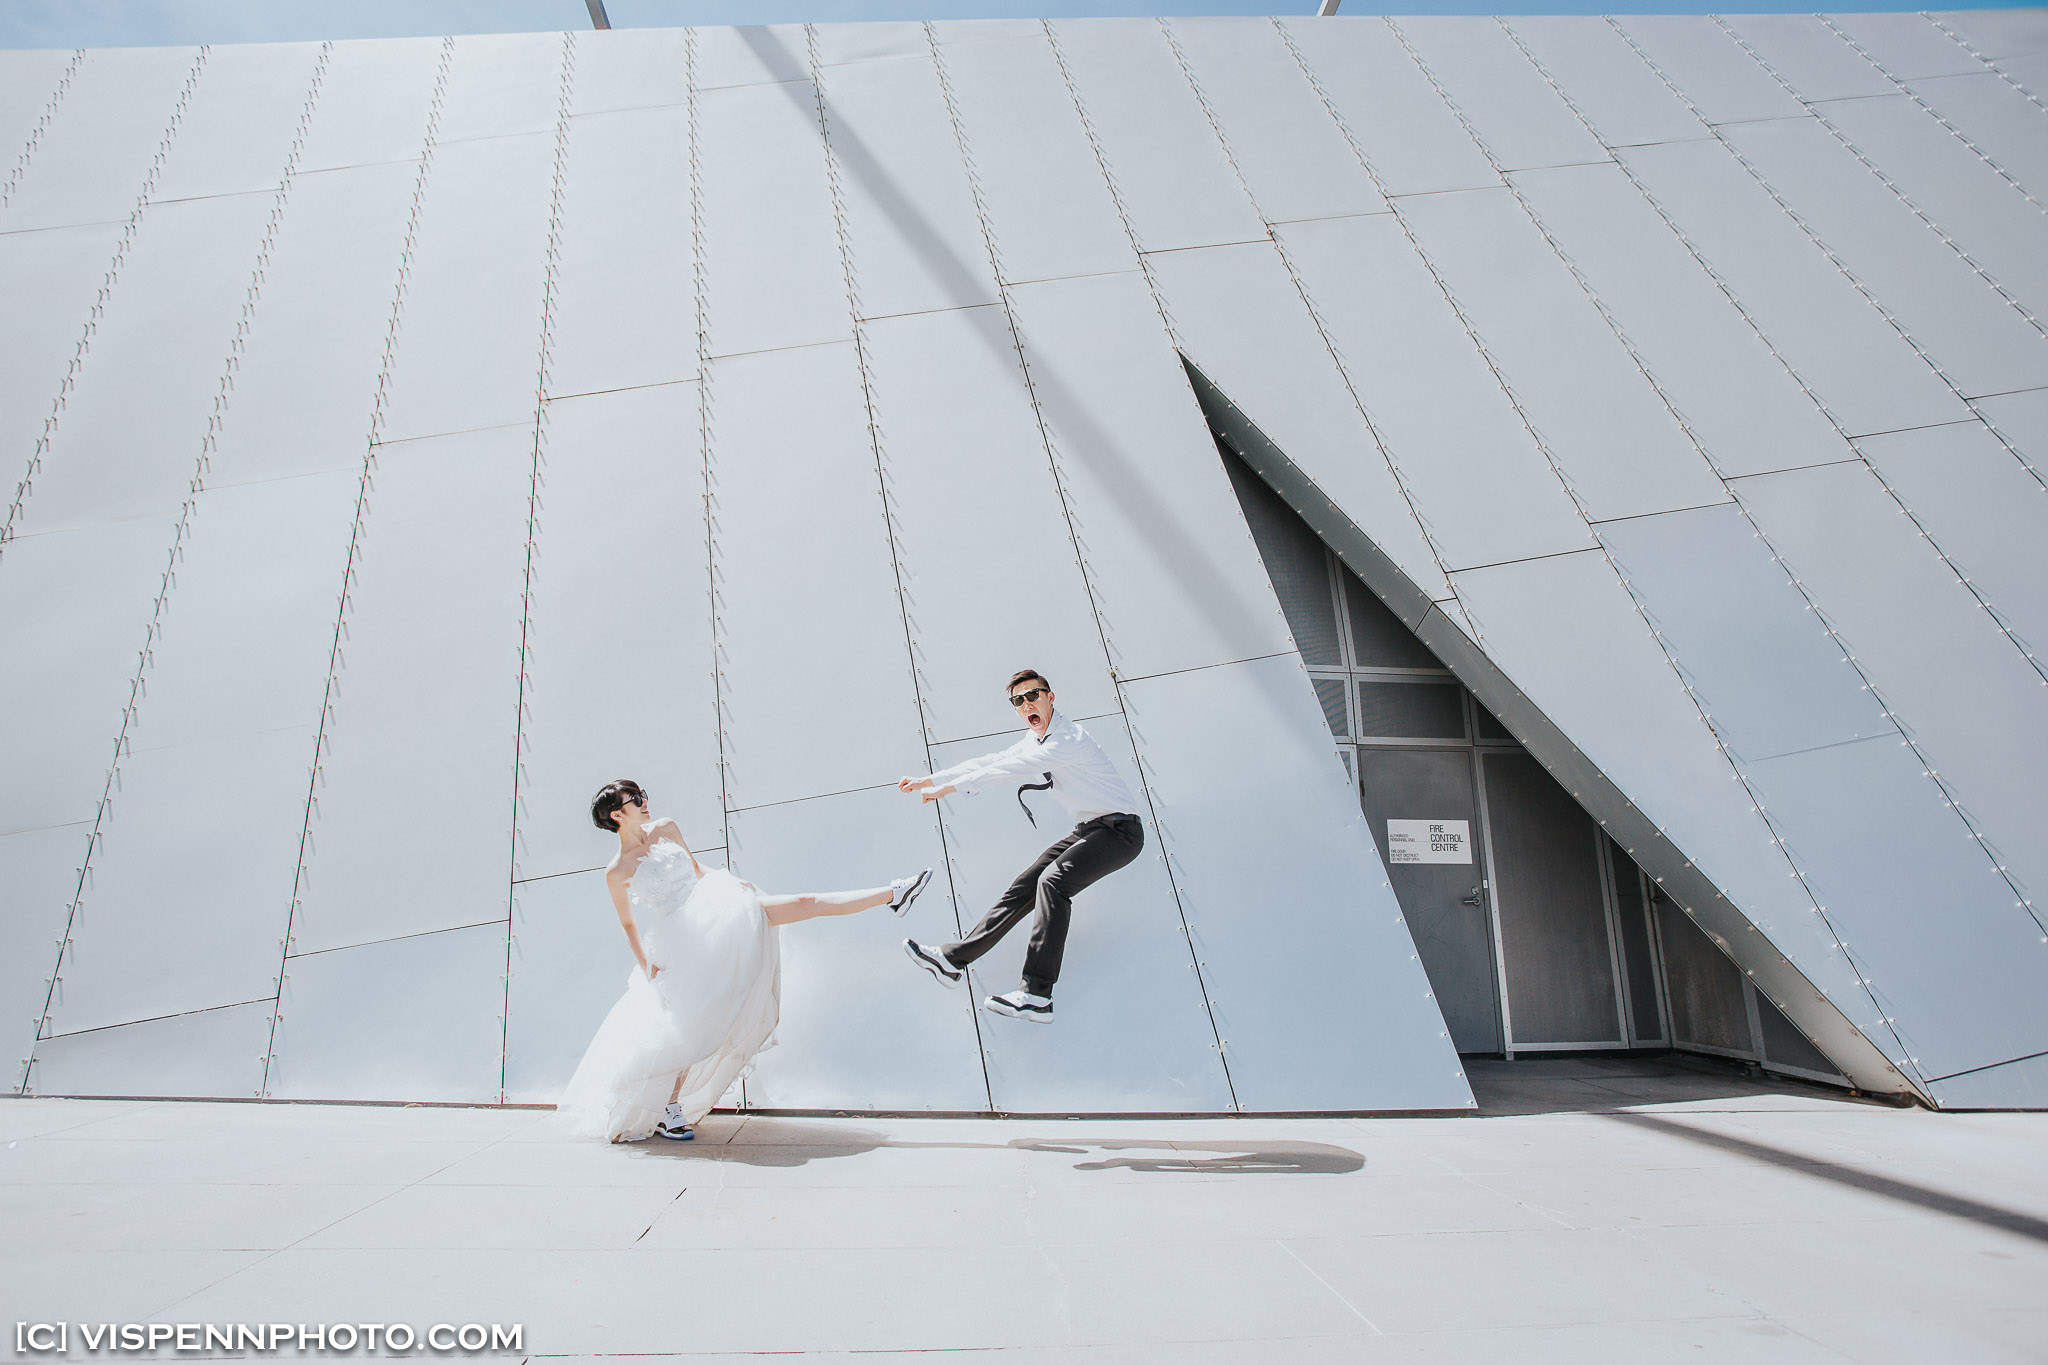 PRE WEDDING Photography Melbourne Ivy PreWedding 2518